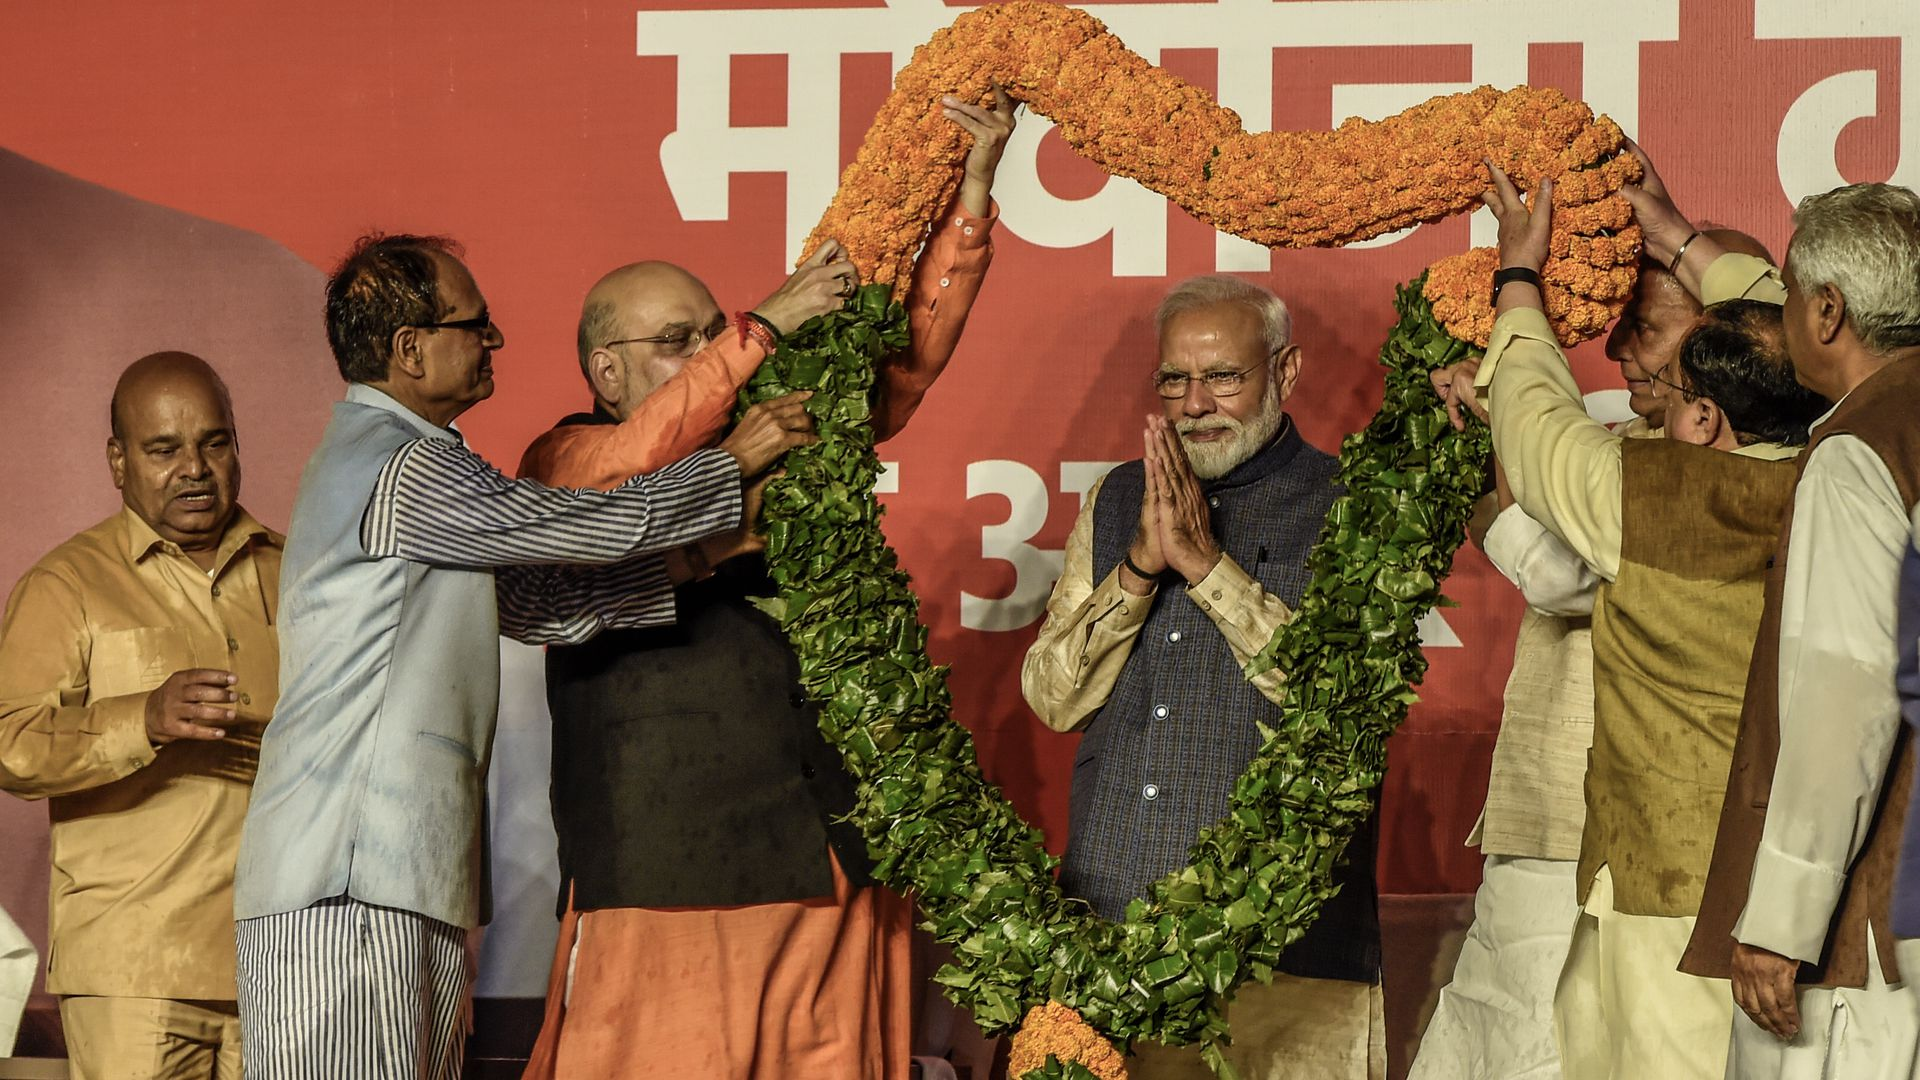 Narendra Modi with a large floral garland